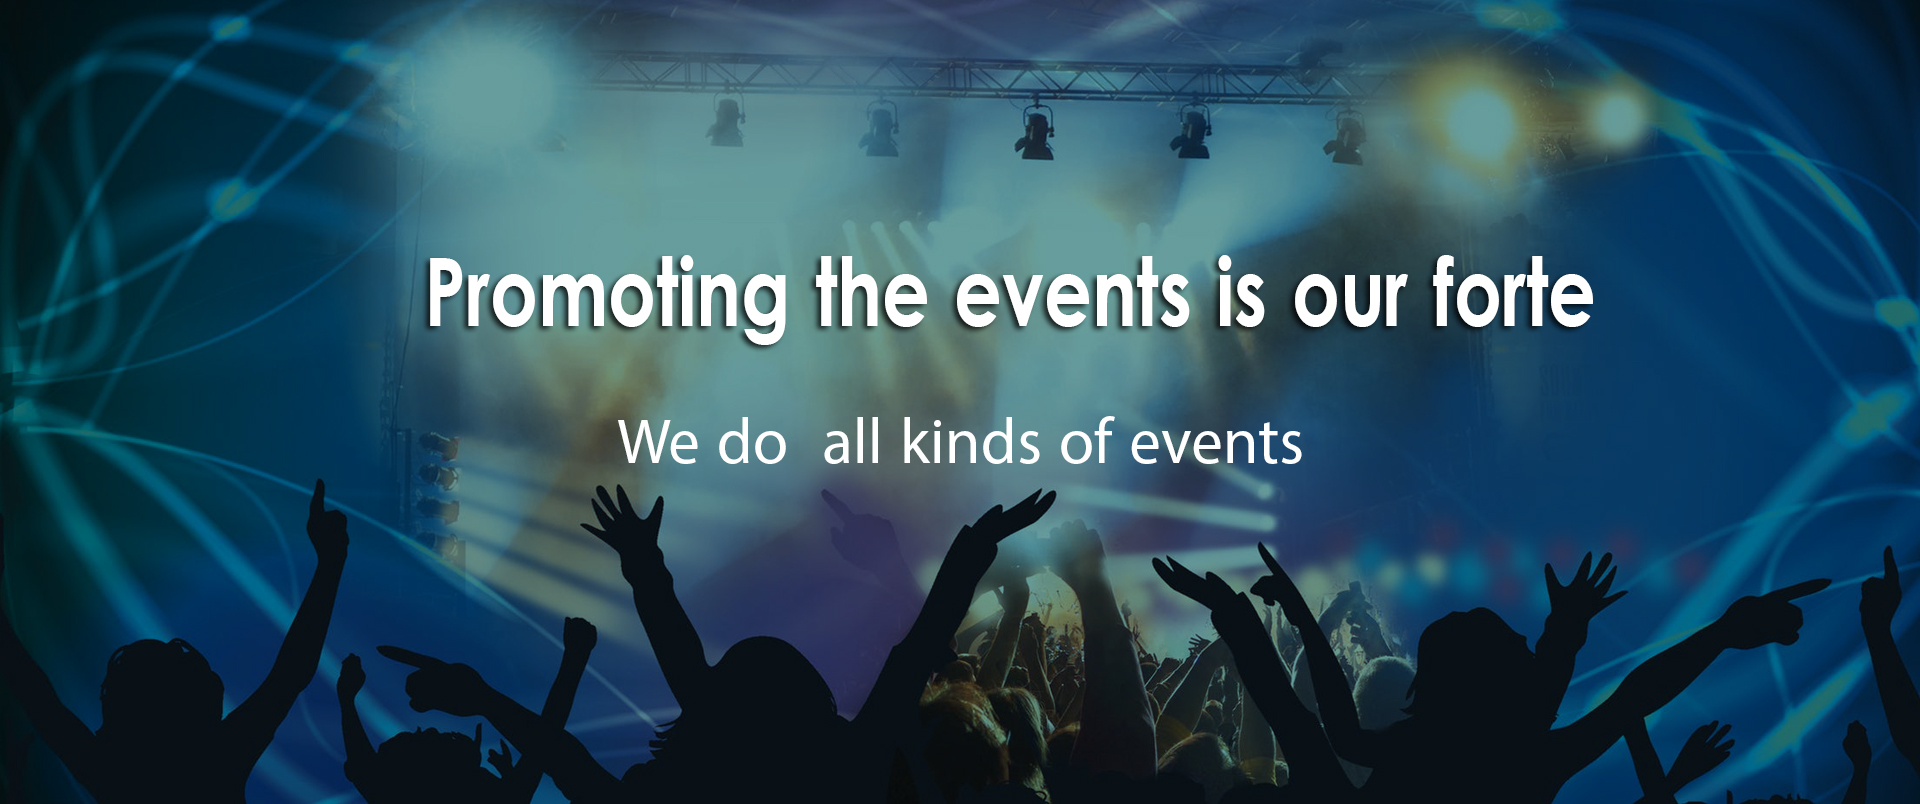 Hyderabad Events - Event Organizers